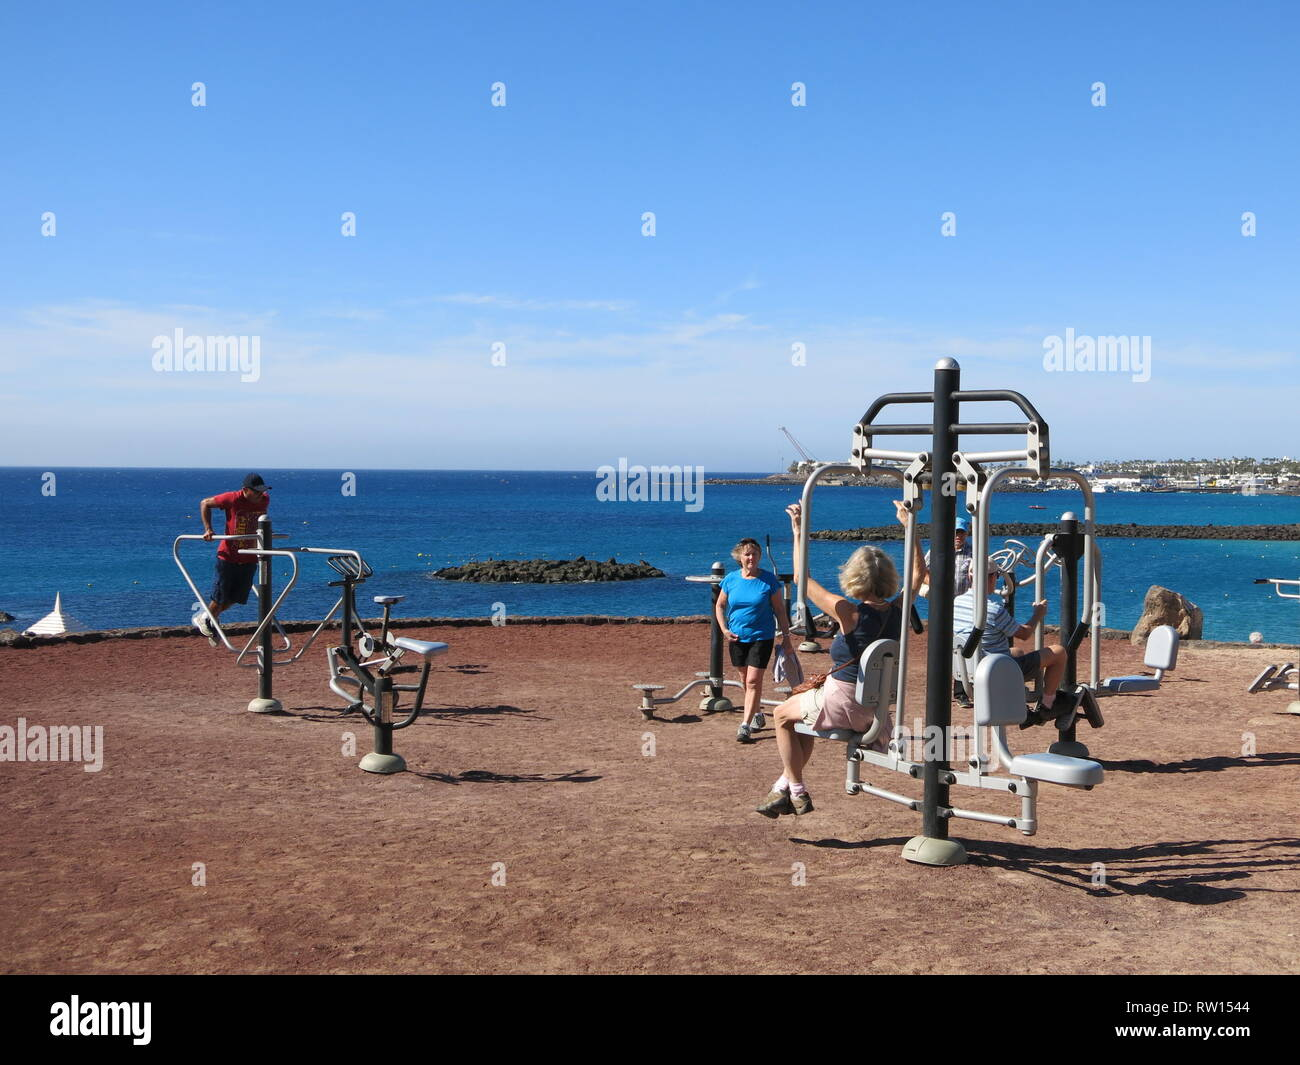 People enjoying a range of outdoor exercise equipment on the shoreline at Playa Blanca, Lanzarote; keep fit in the fresh air and sunshine. - Stock Image